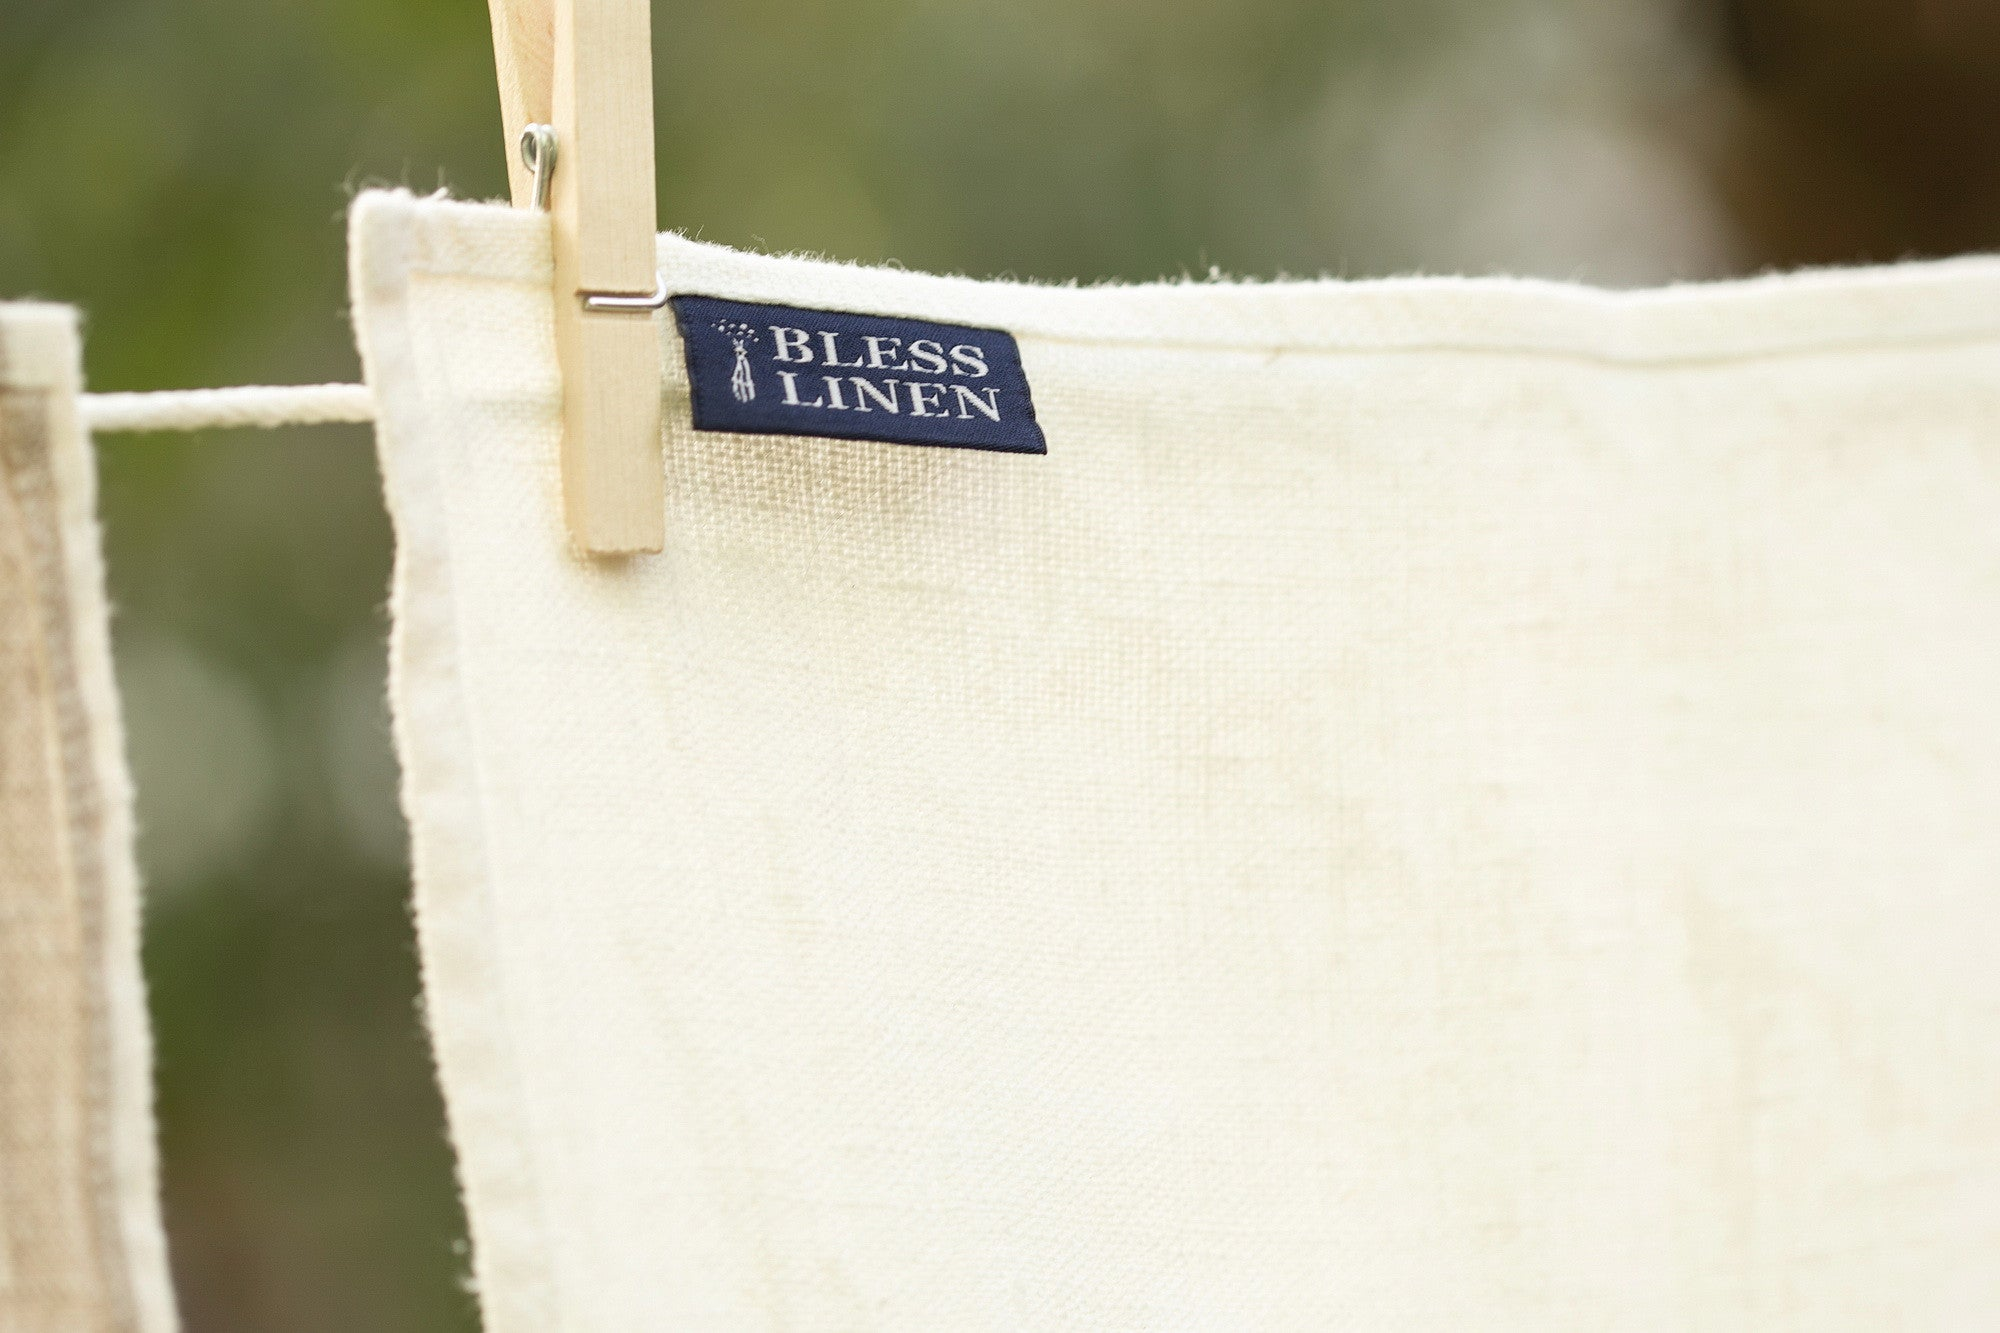 BLESS LINEN Stonewash Pure Linen Flax Hand Kitchen Towel 2-Pack, White - BLESS LINEN pure linen towels and blankets - 4